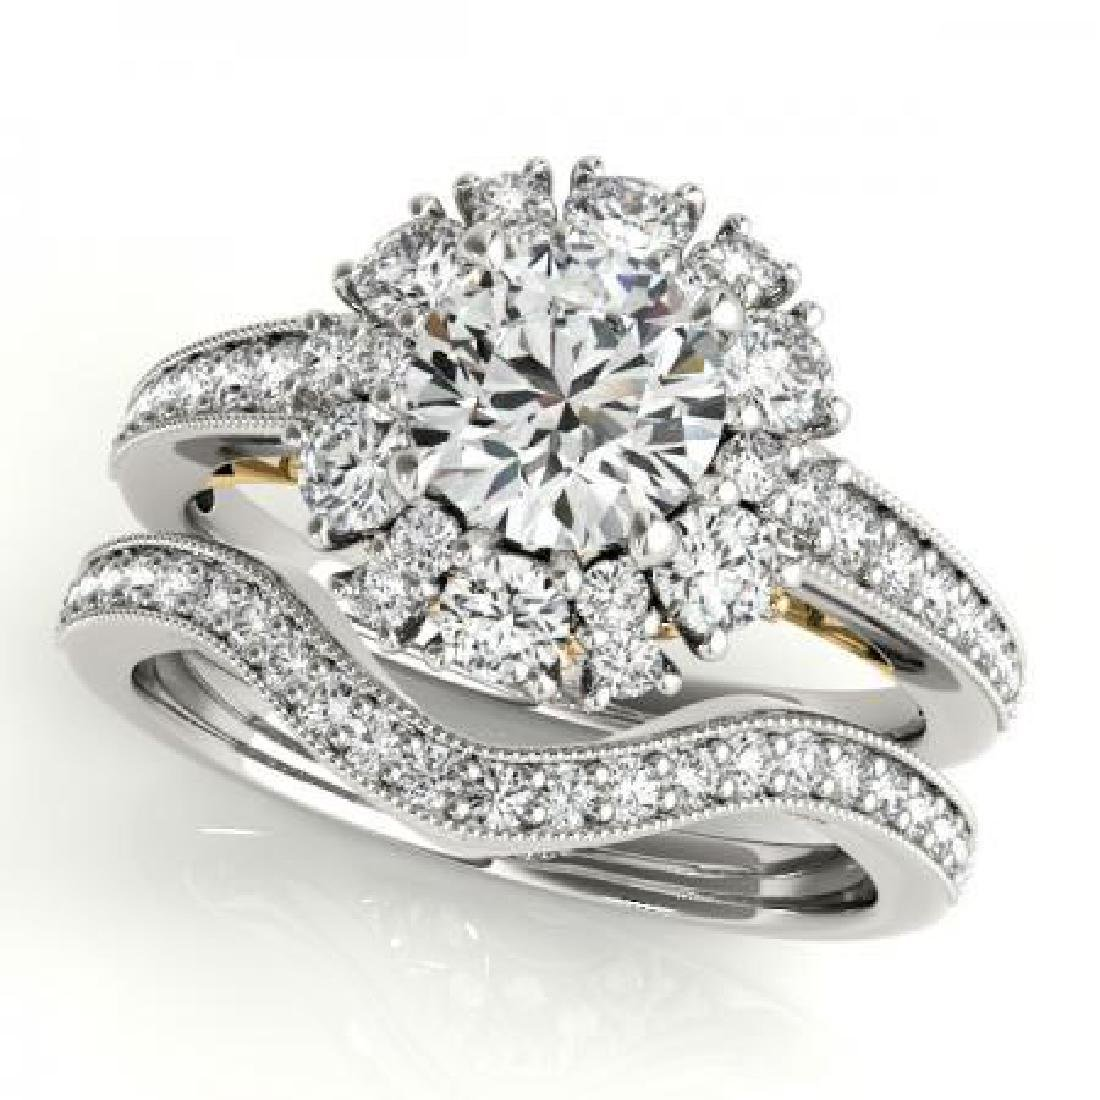 CERTIFIED 18KT TWO TONE GOLD 1.09 CT G-H/VS-SI1 DIAMOND